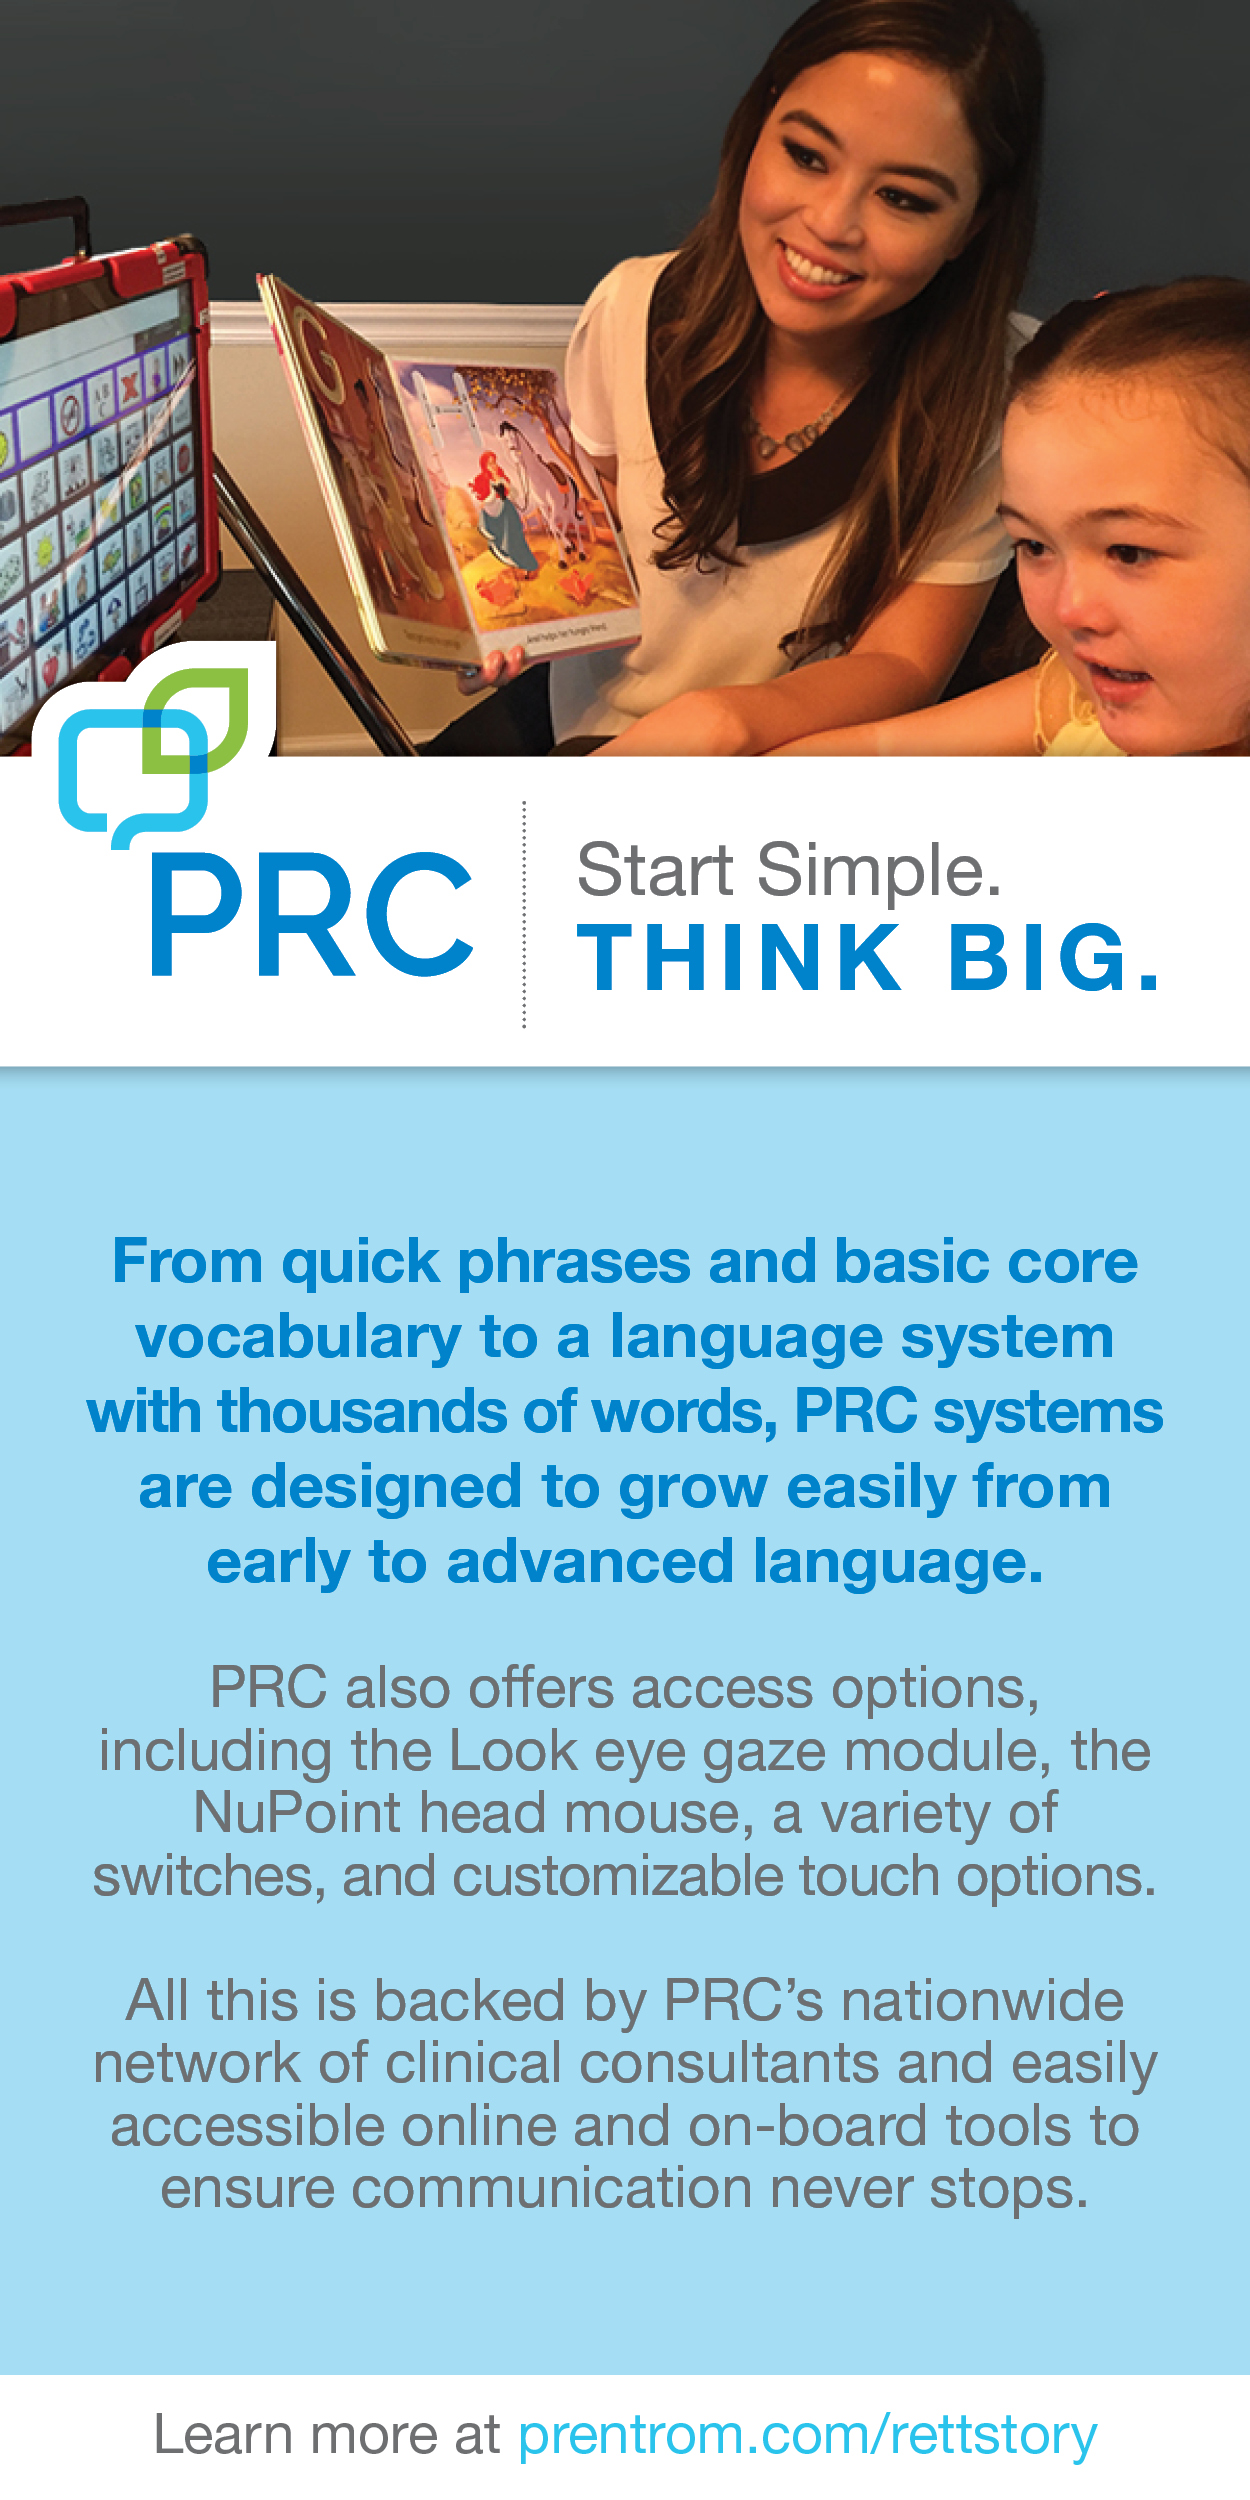 PRC Start Simple. THINK BIG.